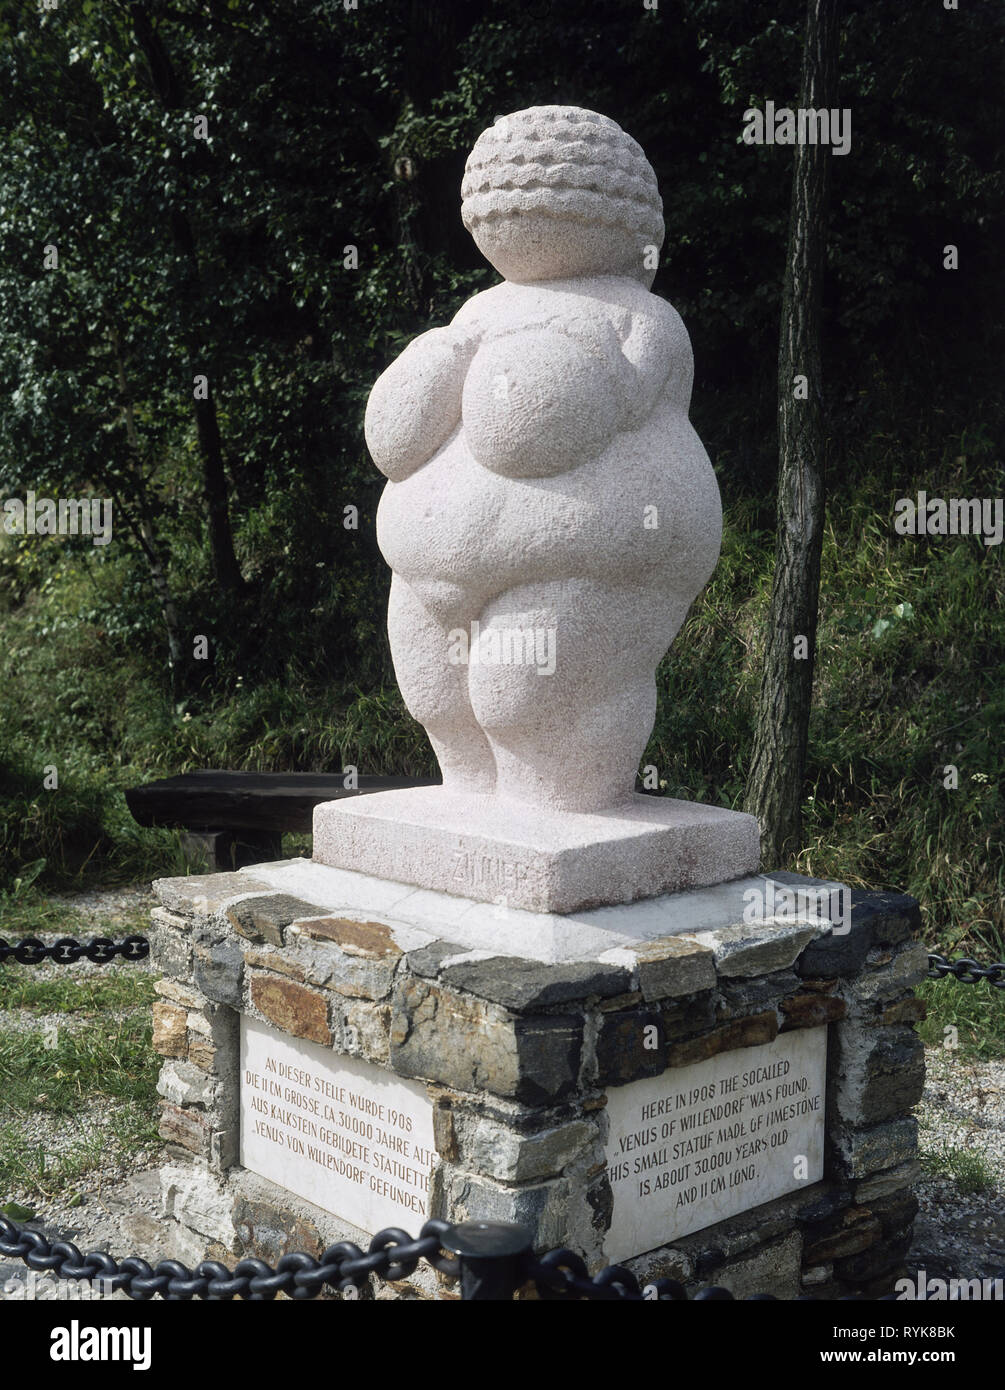 prehistory, prehistoric times, fine arts, 'Venus of Willendorf' (replica), Willendorf in the Wachau, Additional-Rights-Clearance-Info-Not-Available - Stock Image